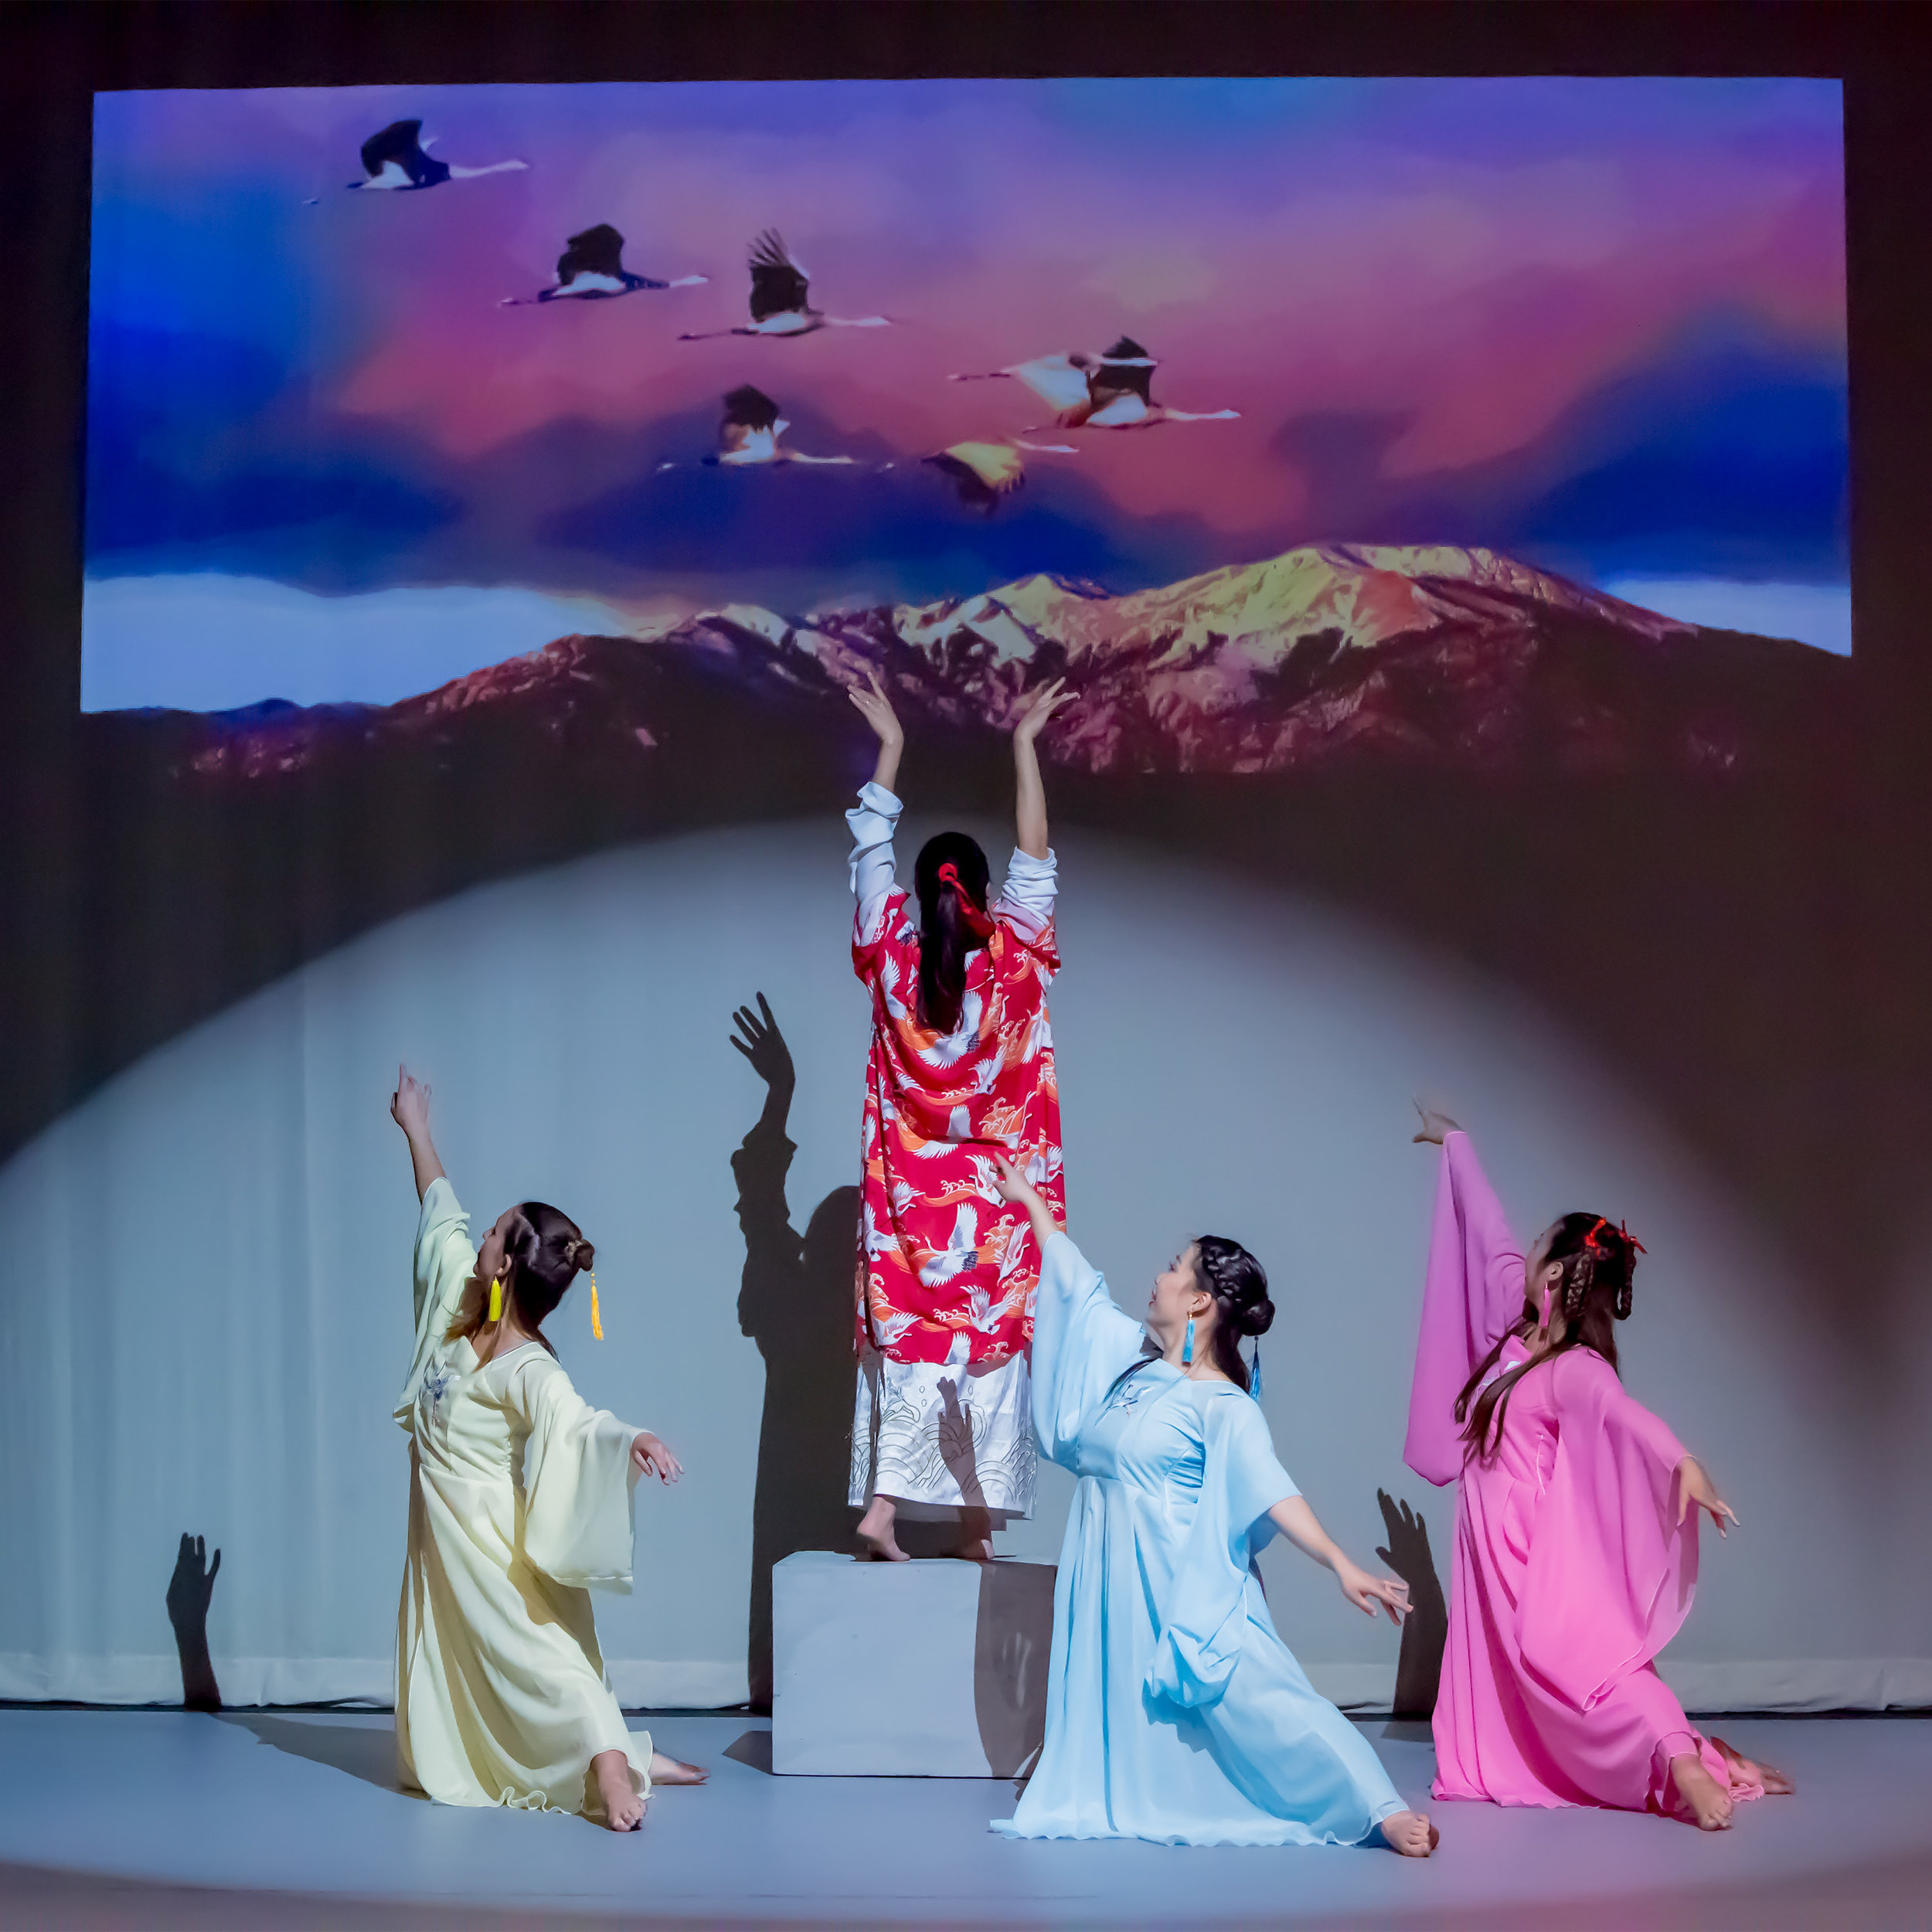 "(L to R) Kelsey Manes, Jingqui Guan (choreographer), Mizuki Sako and Kyra Sakamoto as Cranes in ""Lord of the Cranes"""